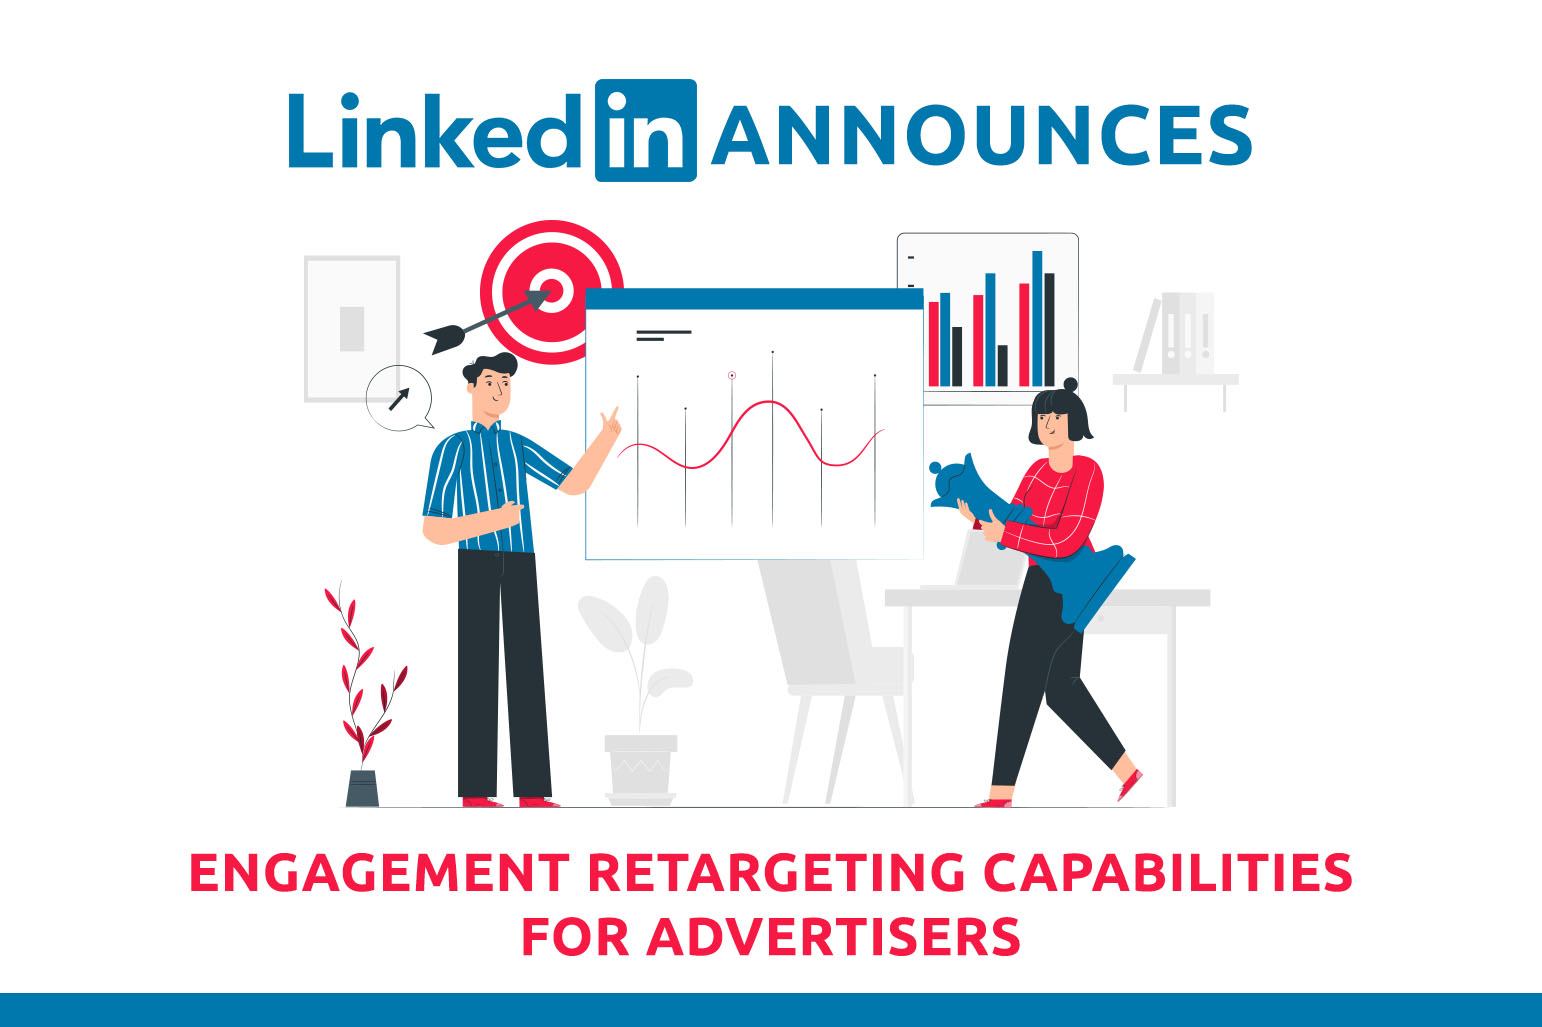 LinkedIn Announces Engagement Retargeting Capabilities For Advertisers